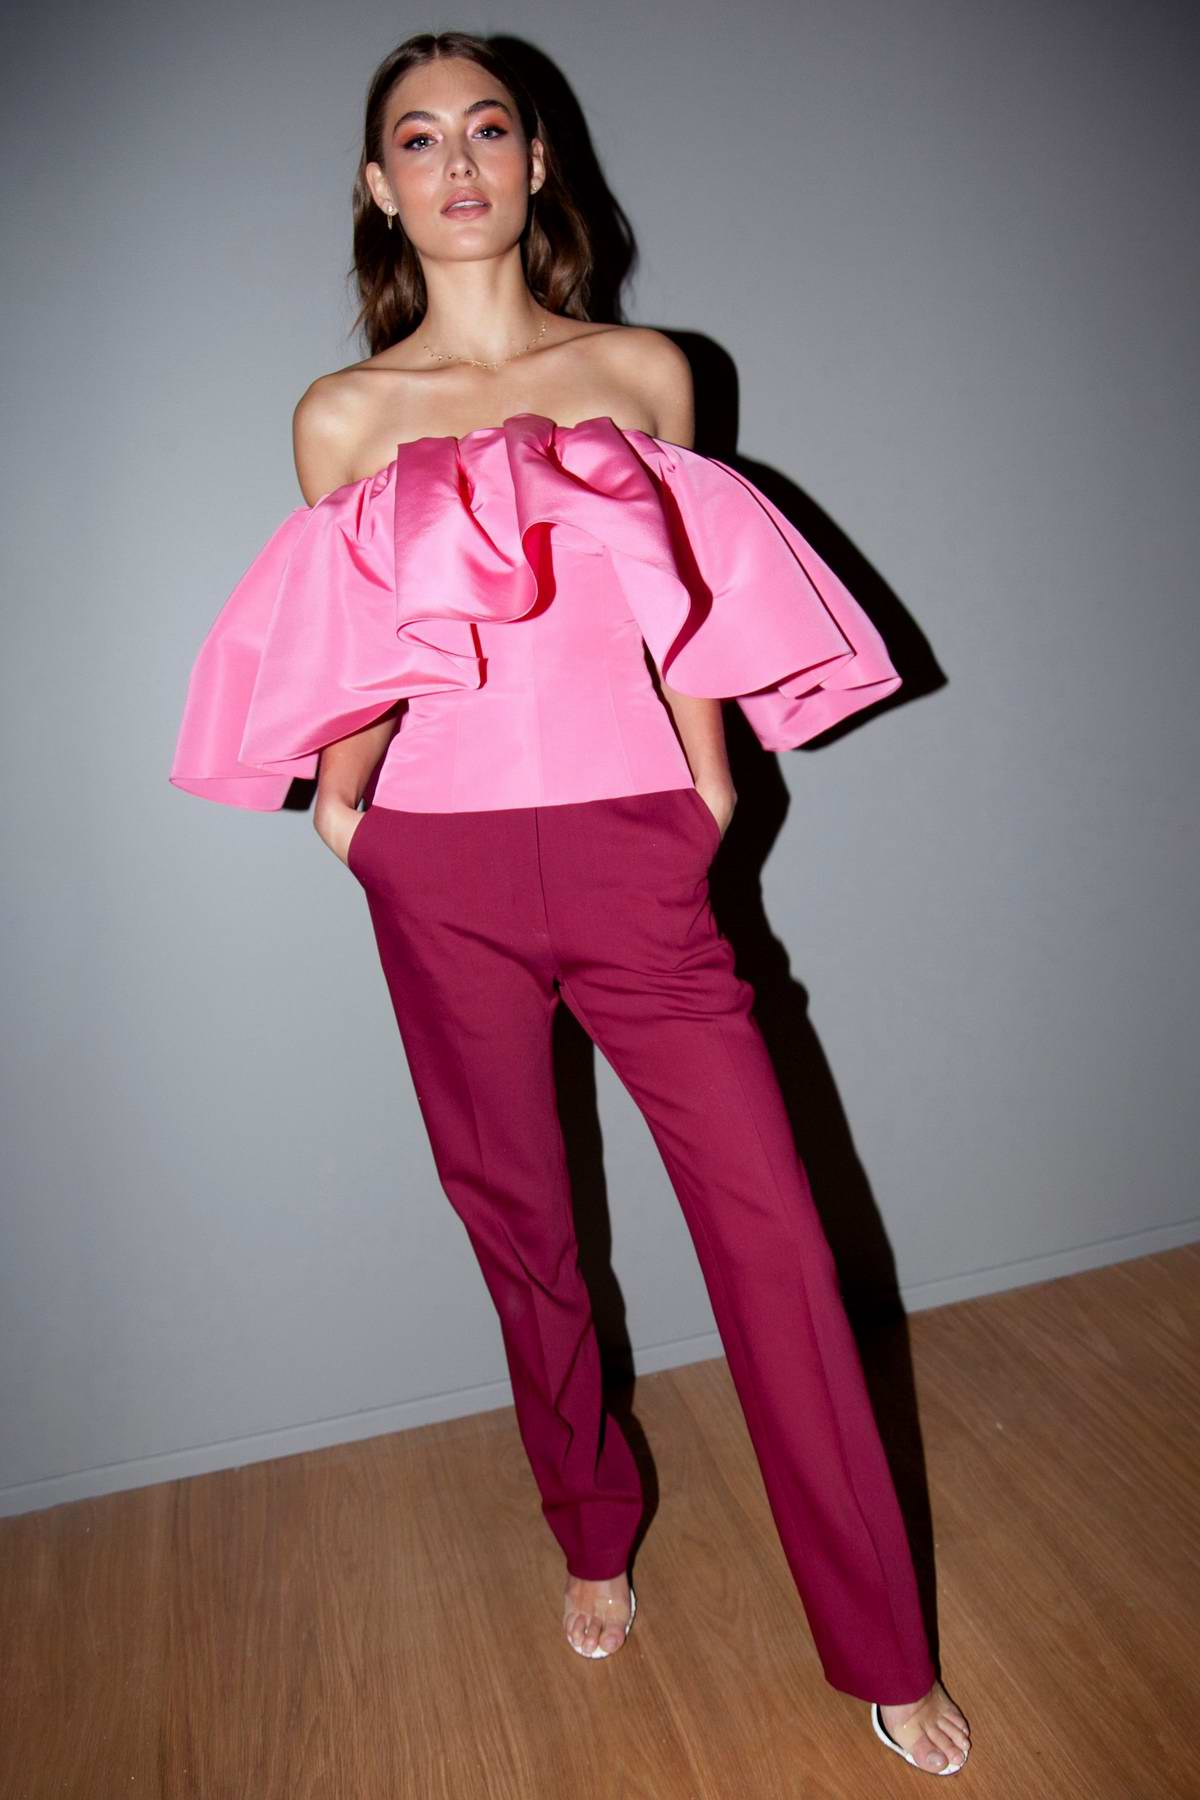 Grace Elizabeth at the opening of L'Avenue at Saks in New York City